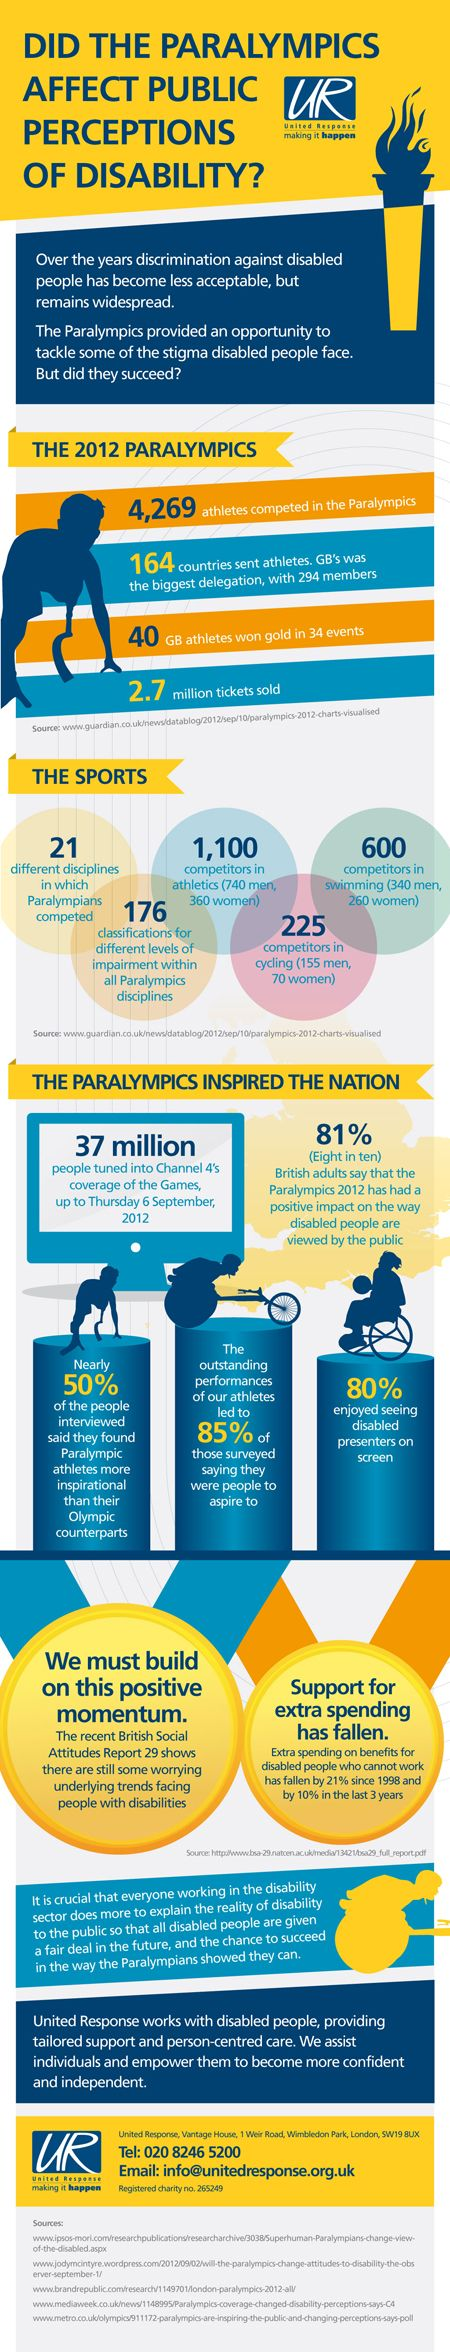 Did the paralympics affect public perceptions of disability?